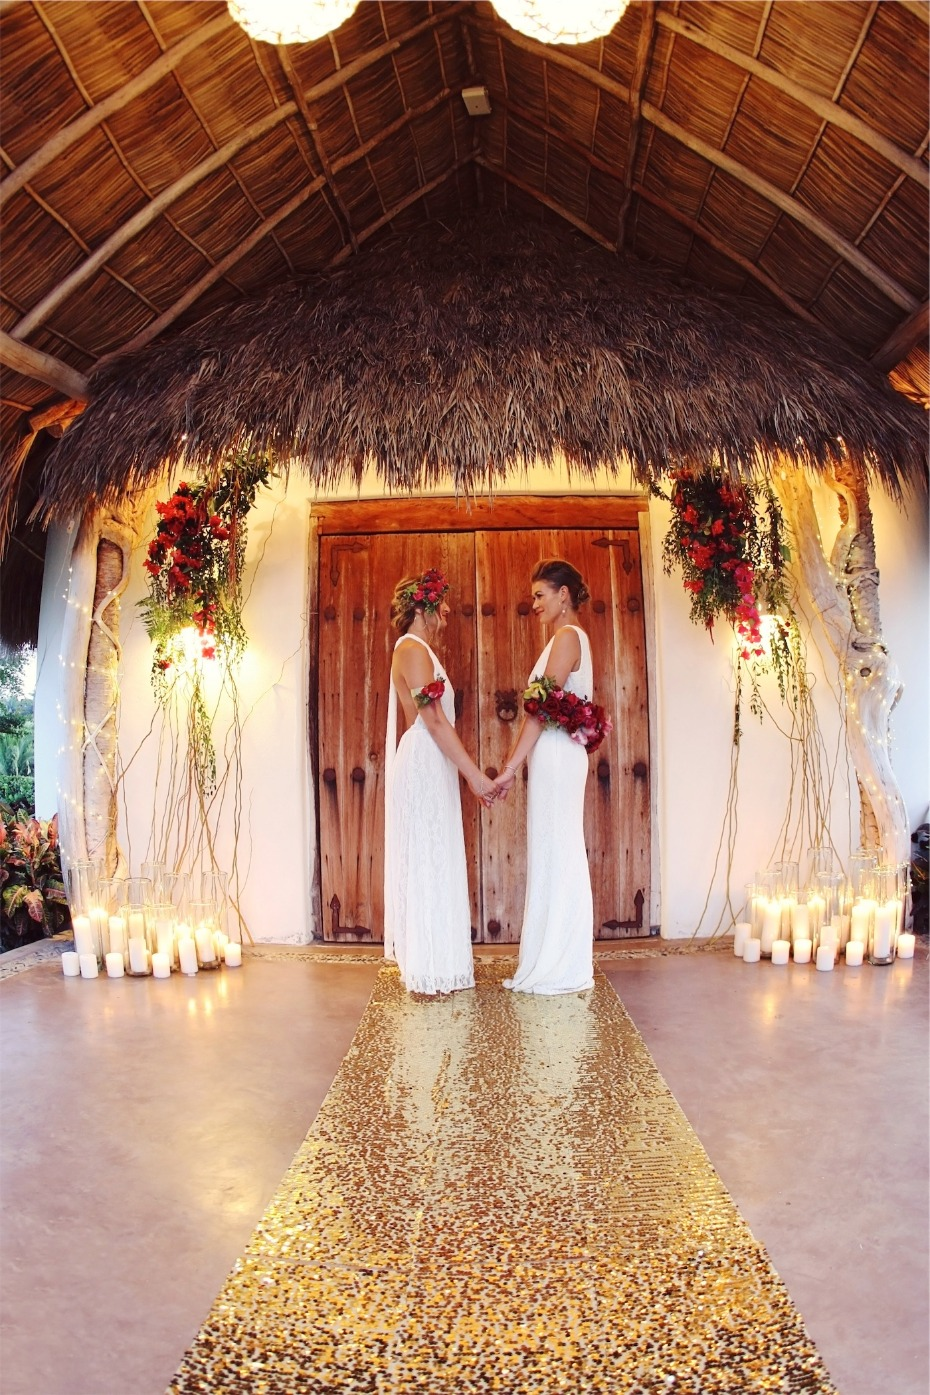 gold glowing wedding ceremony for two